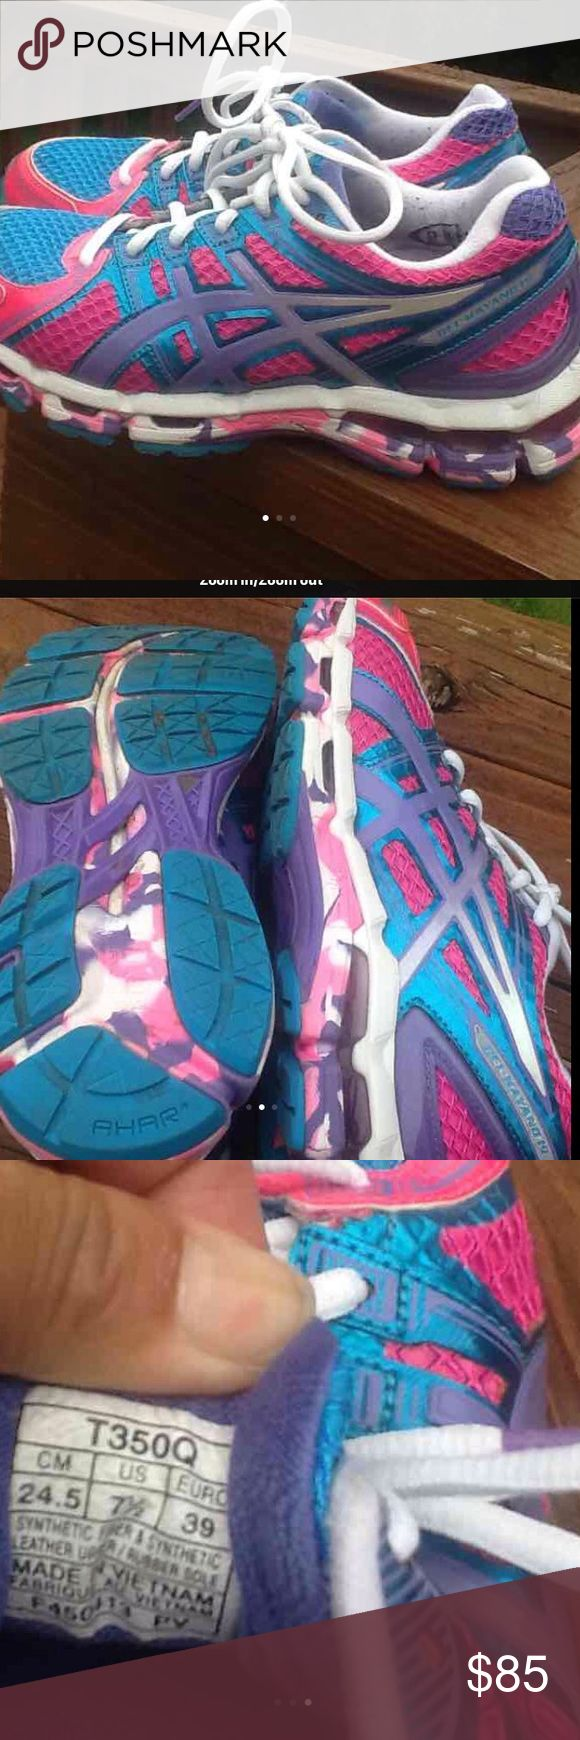 Asics kayano 19 size 7.5 Asics kayano 19 women's size 7.5 no running miles use only indoor gym! Awesome shoes for serious runners Asics Shoes Athletic Shoes